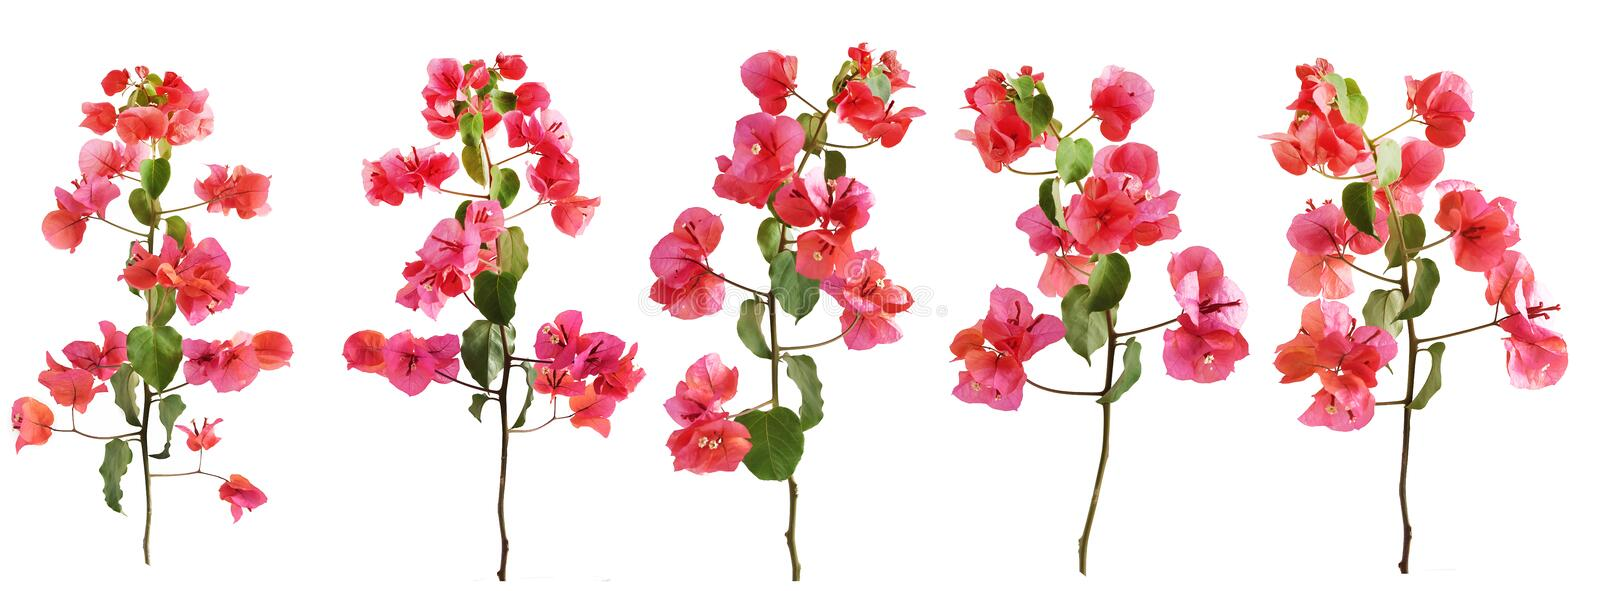 Group of bougainvillea flowers branches with leaves isolated on a white background. royalty free stock images